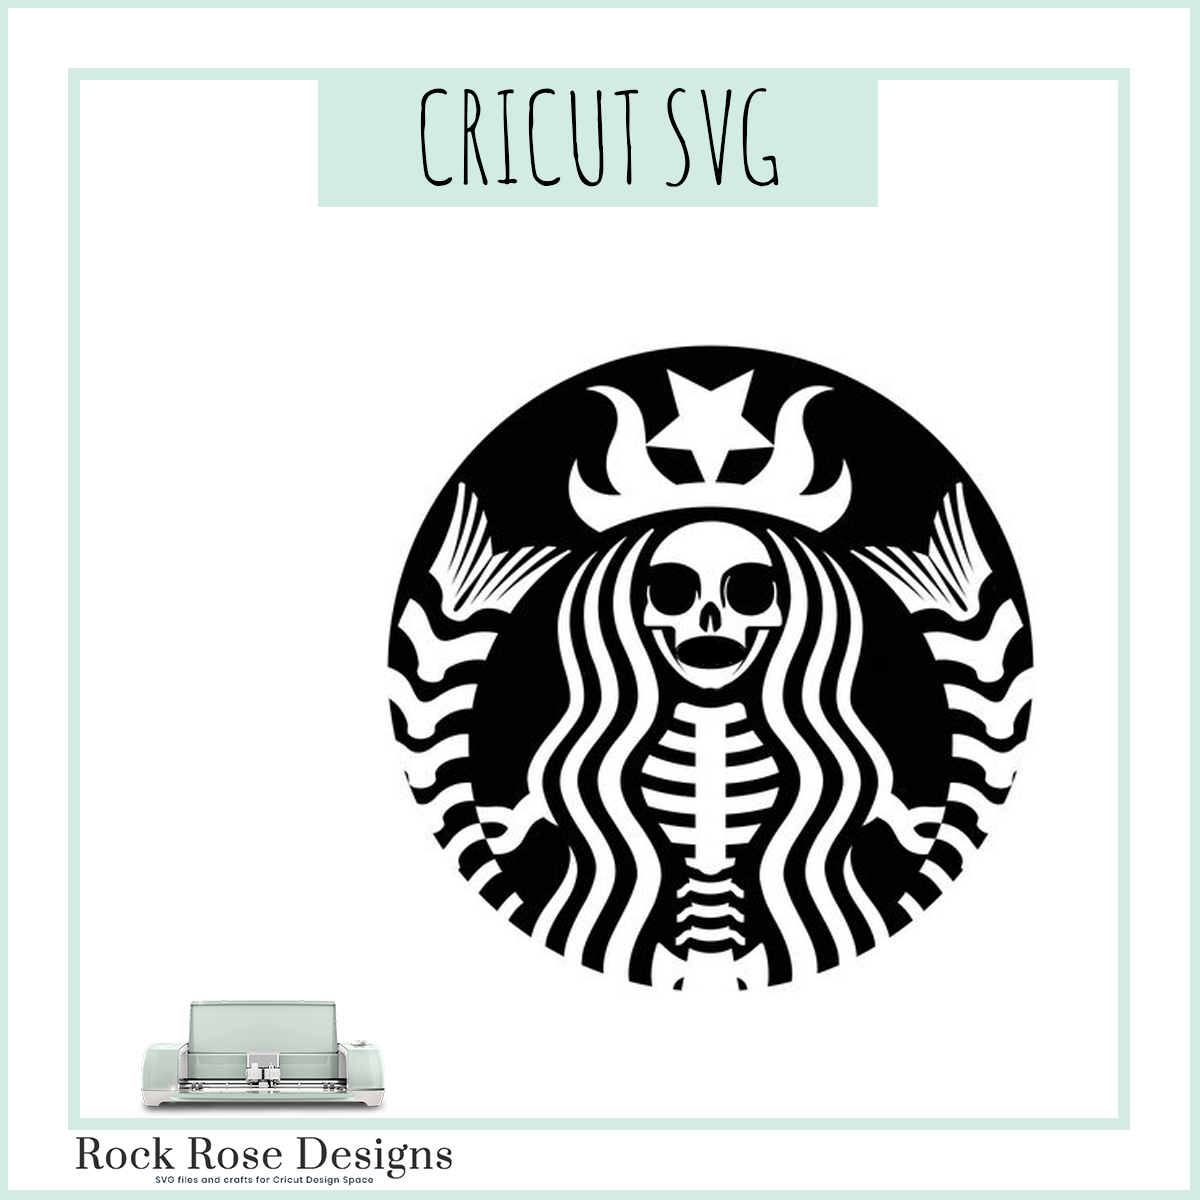 Product categories All SVG Files Rock Rose Designs